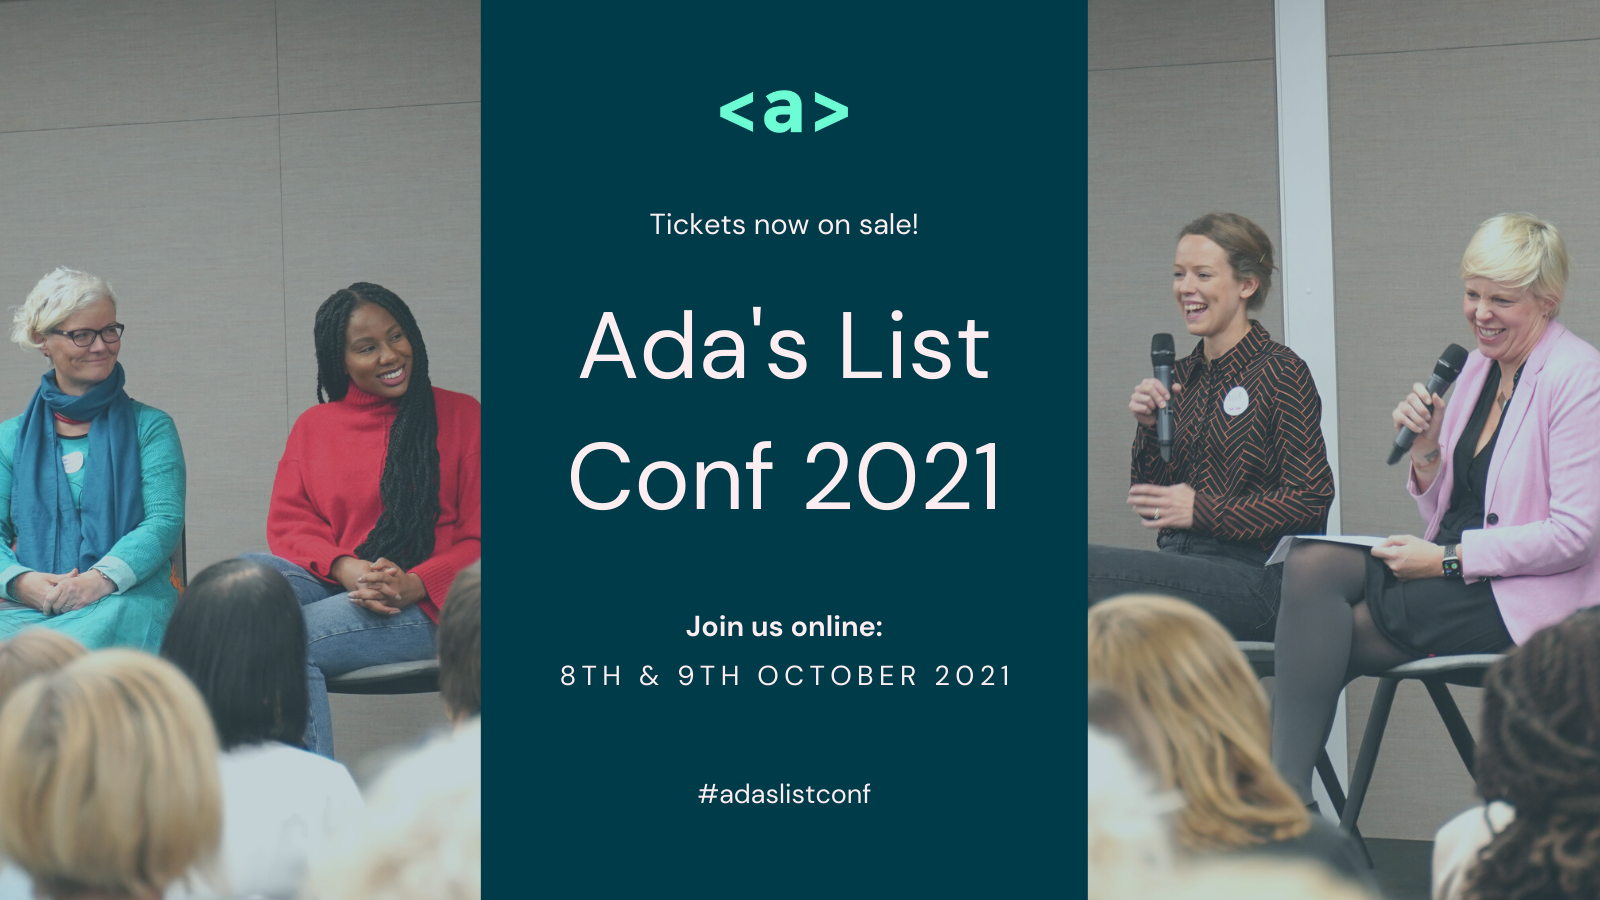 AND is sponsoring Ada's List Conf 2021